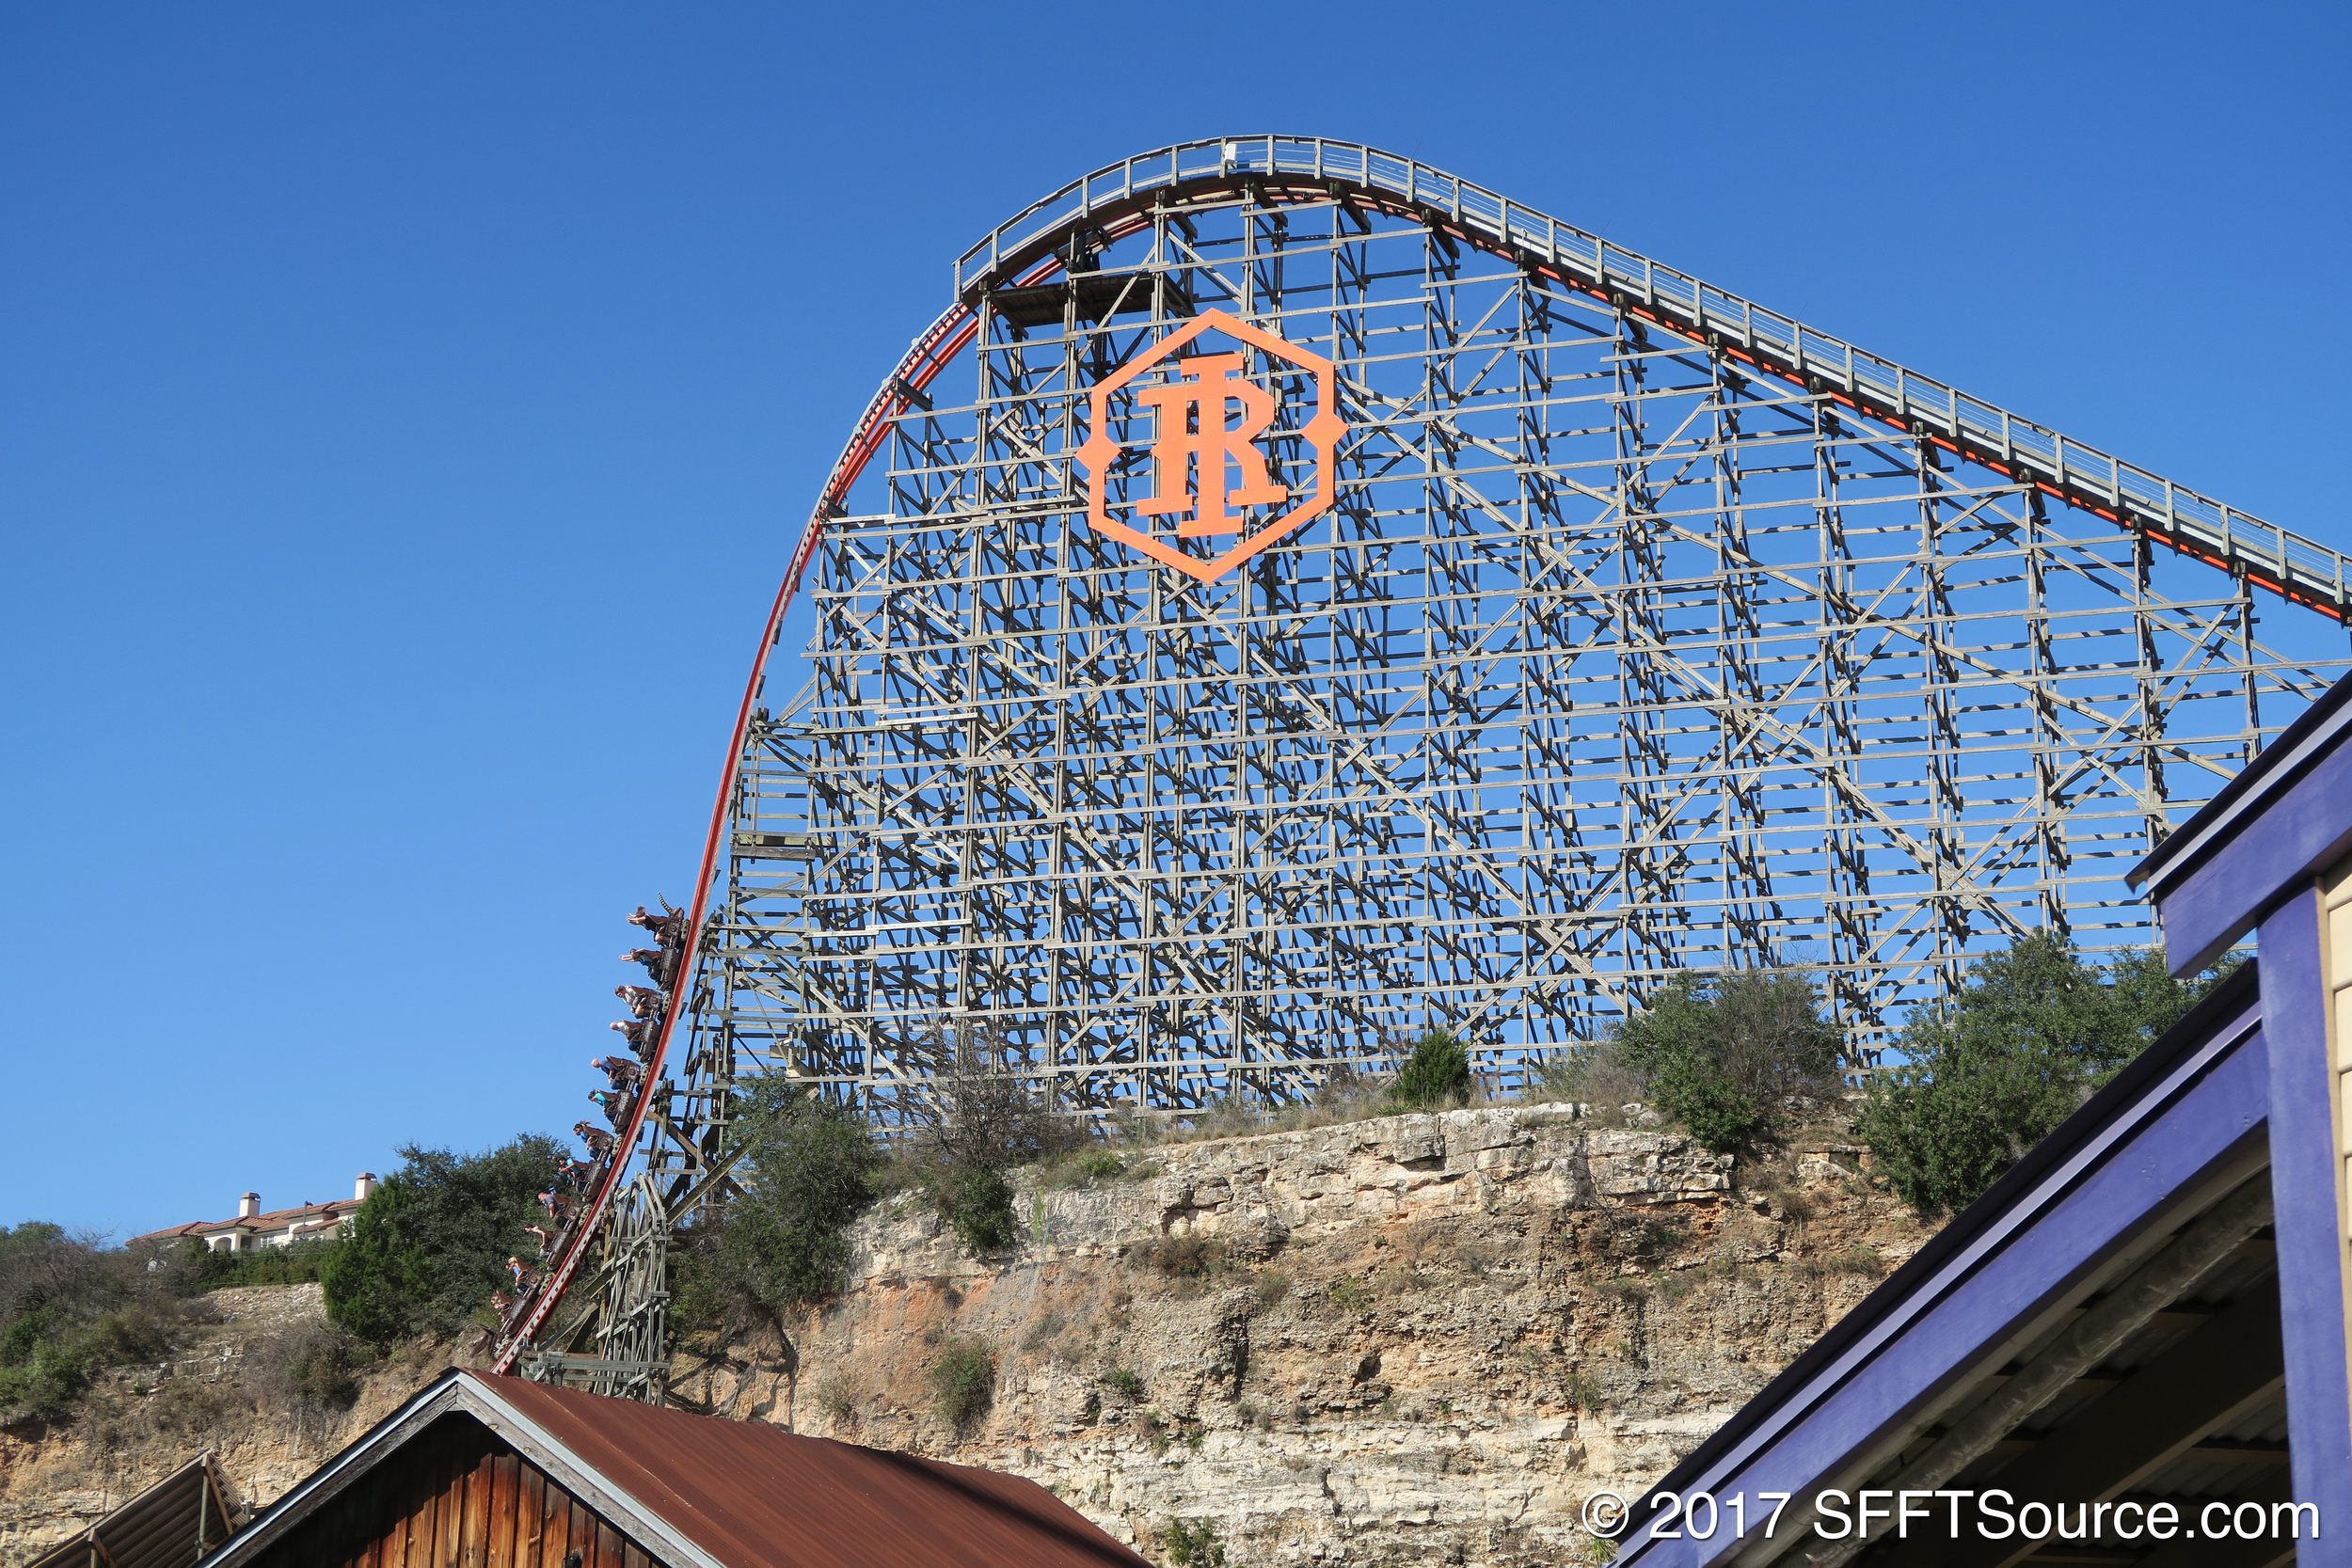 A train traveling down the ride's first drop.